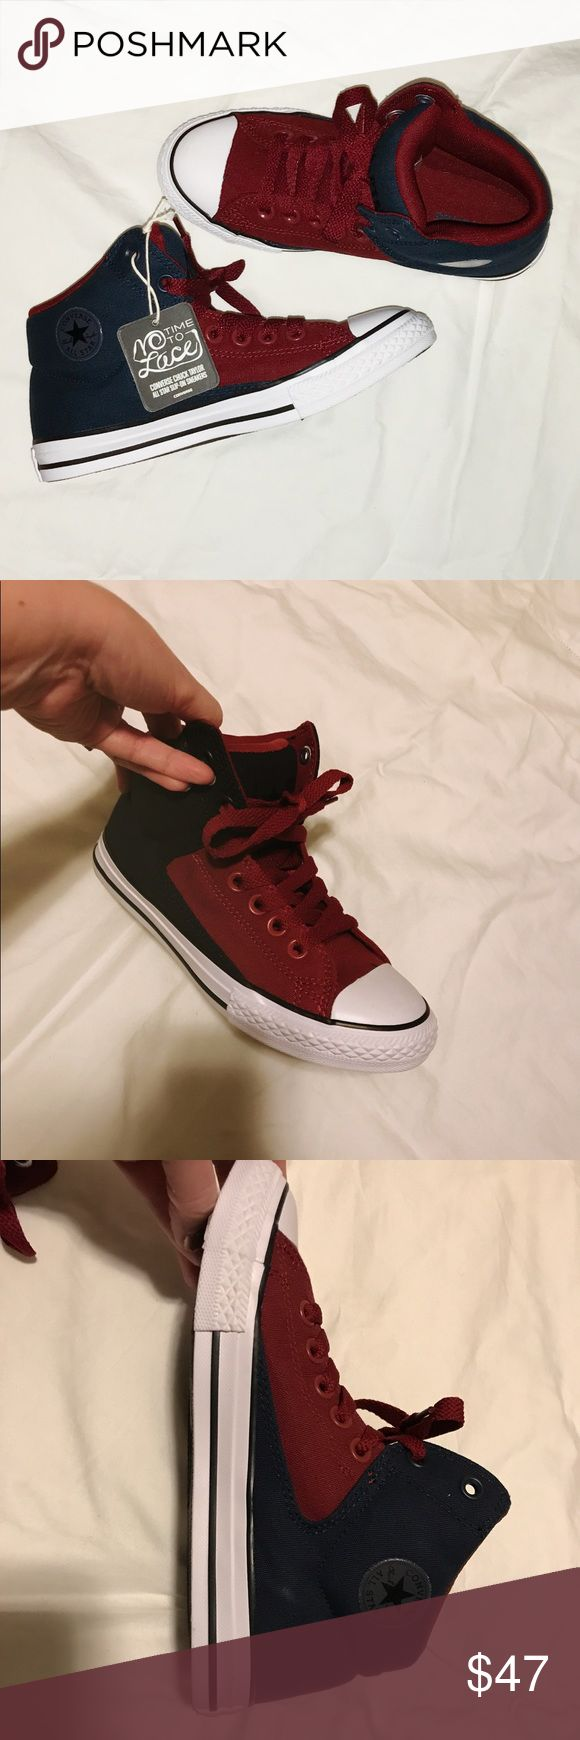 Converse slip one juniors sneakers Converse slip on no time to lace sneakers. Burgundy, navy blue and white. Converse Shoes Sneakers